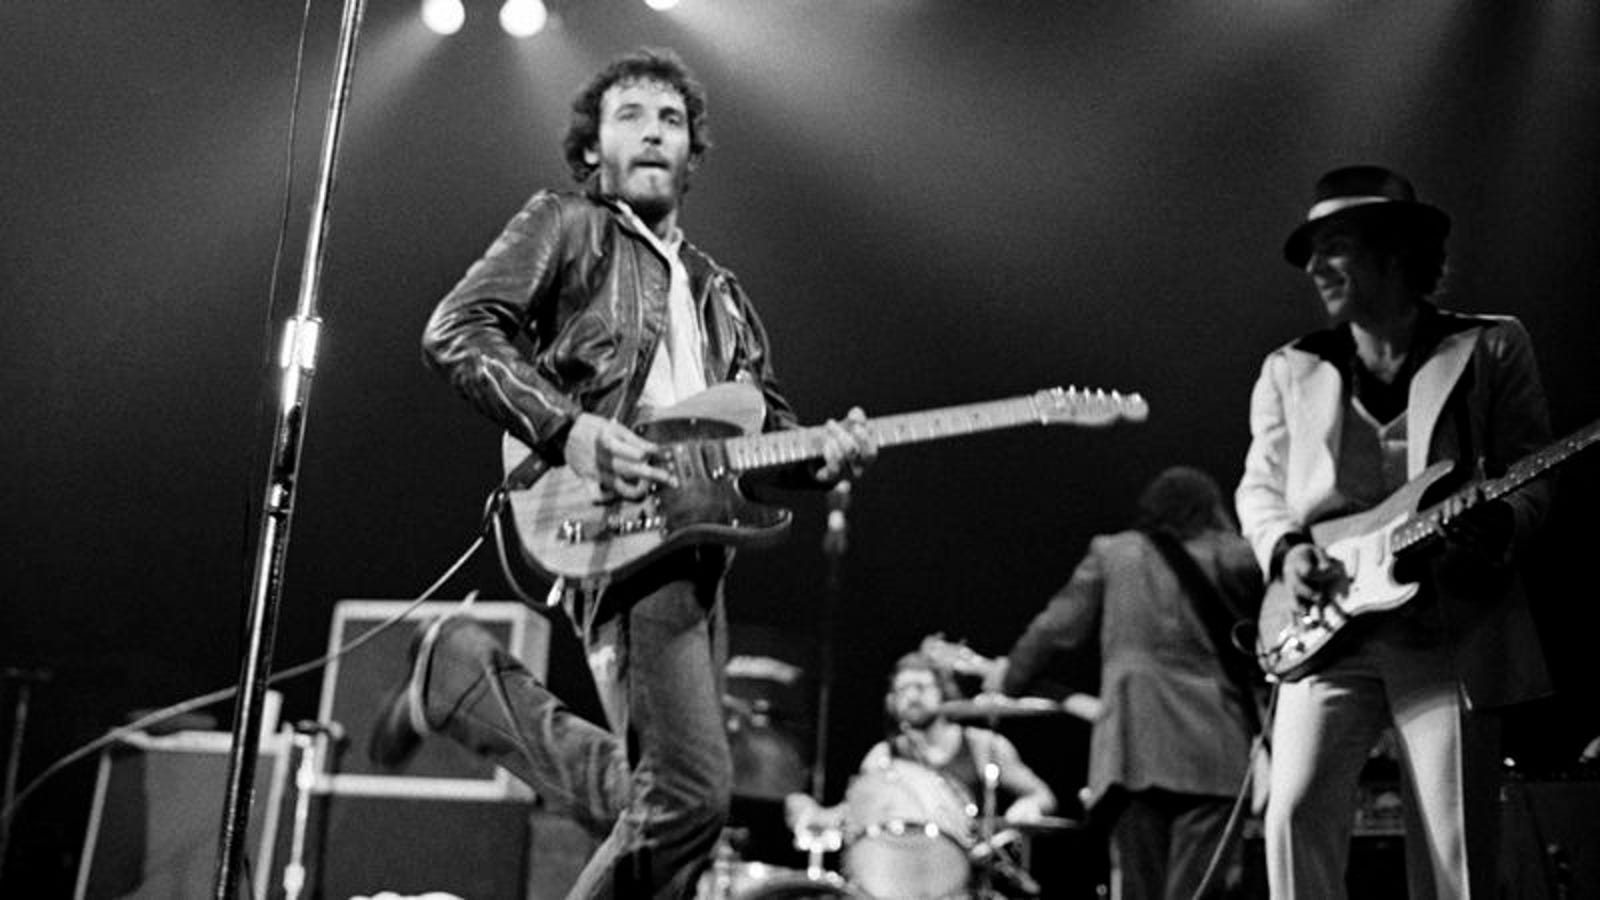 How Well Do You Know The Lyrics To 'Born To Run'?